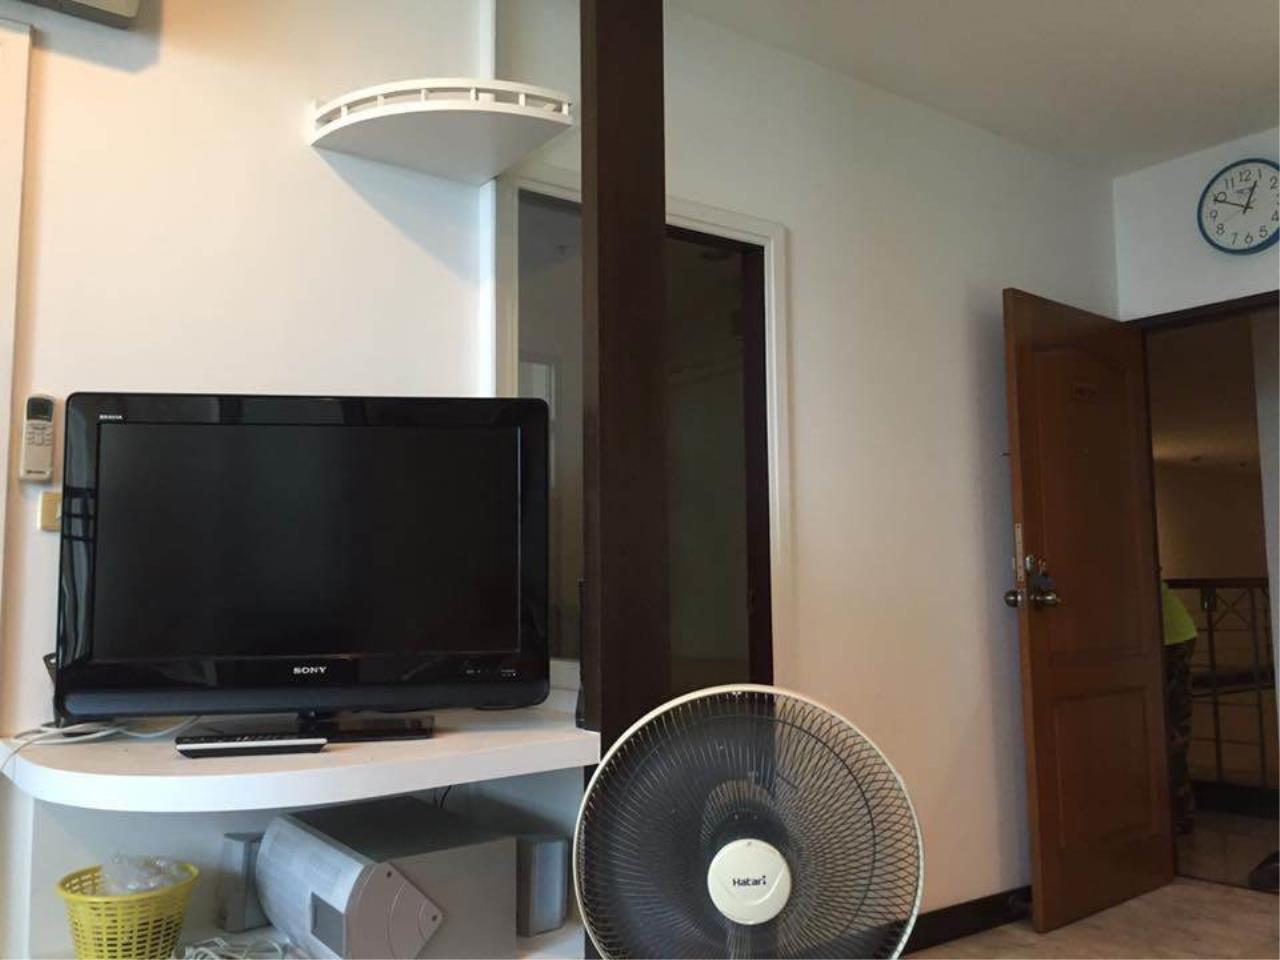 RE/MAX All Star Realty Agency's Sathorn House Condo for rent (BTS Sarasak) 6